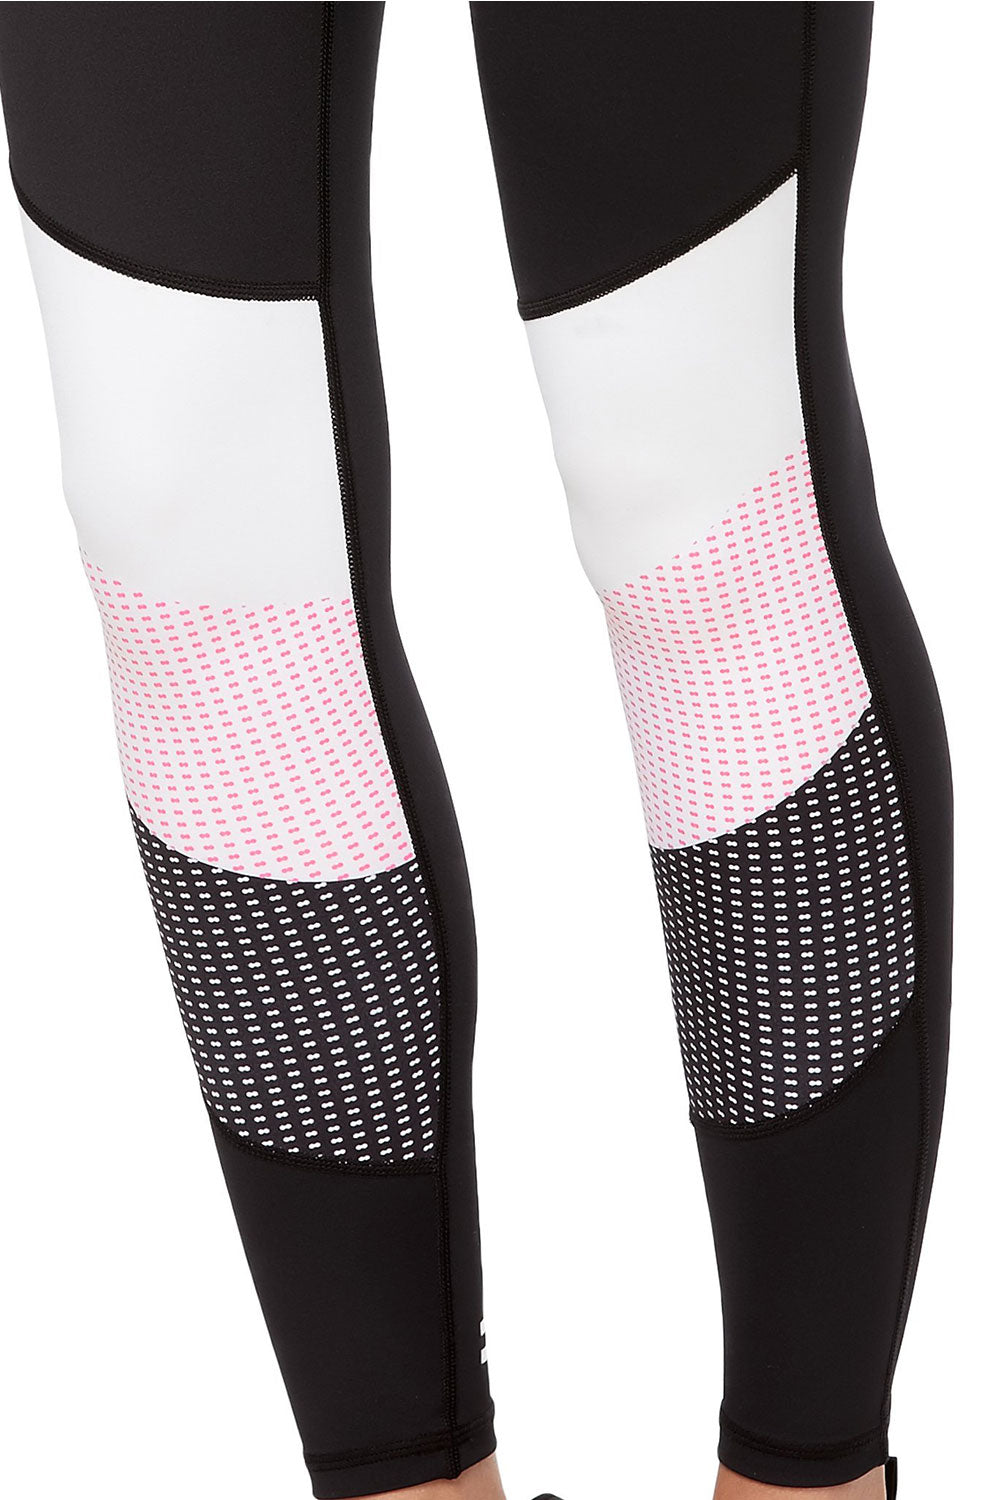 Evie Legging - All Star Pink